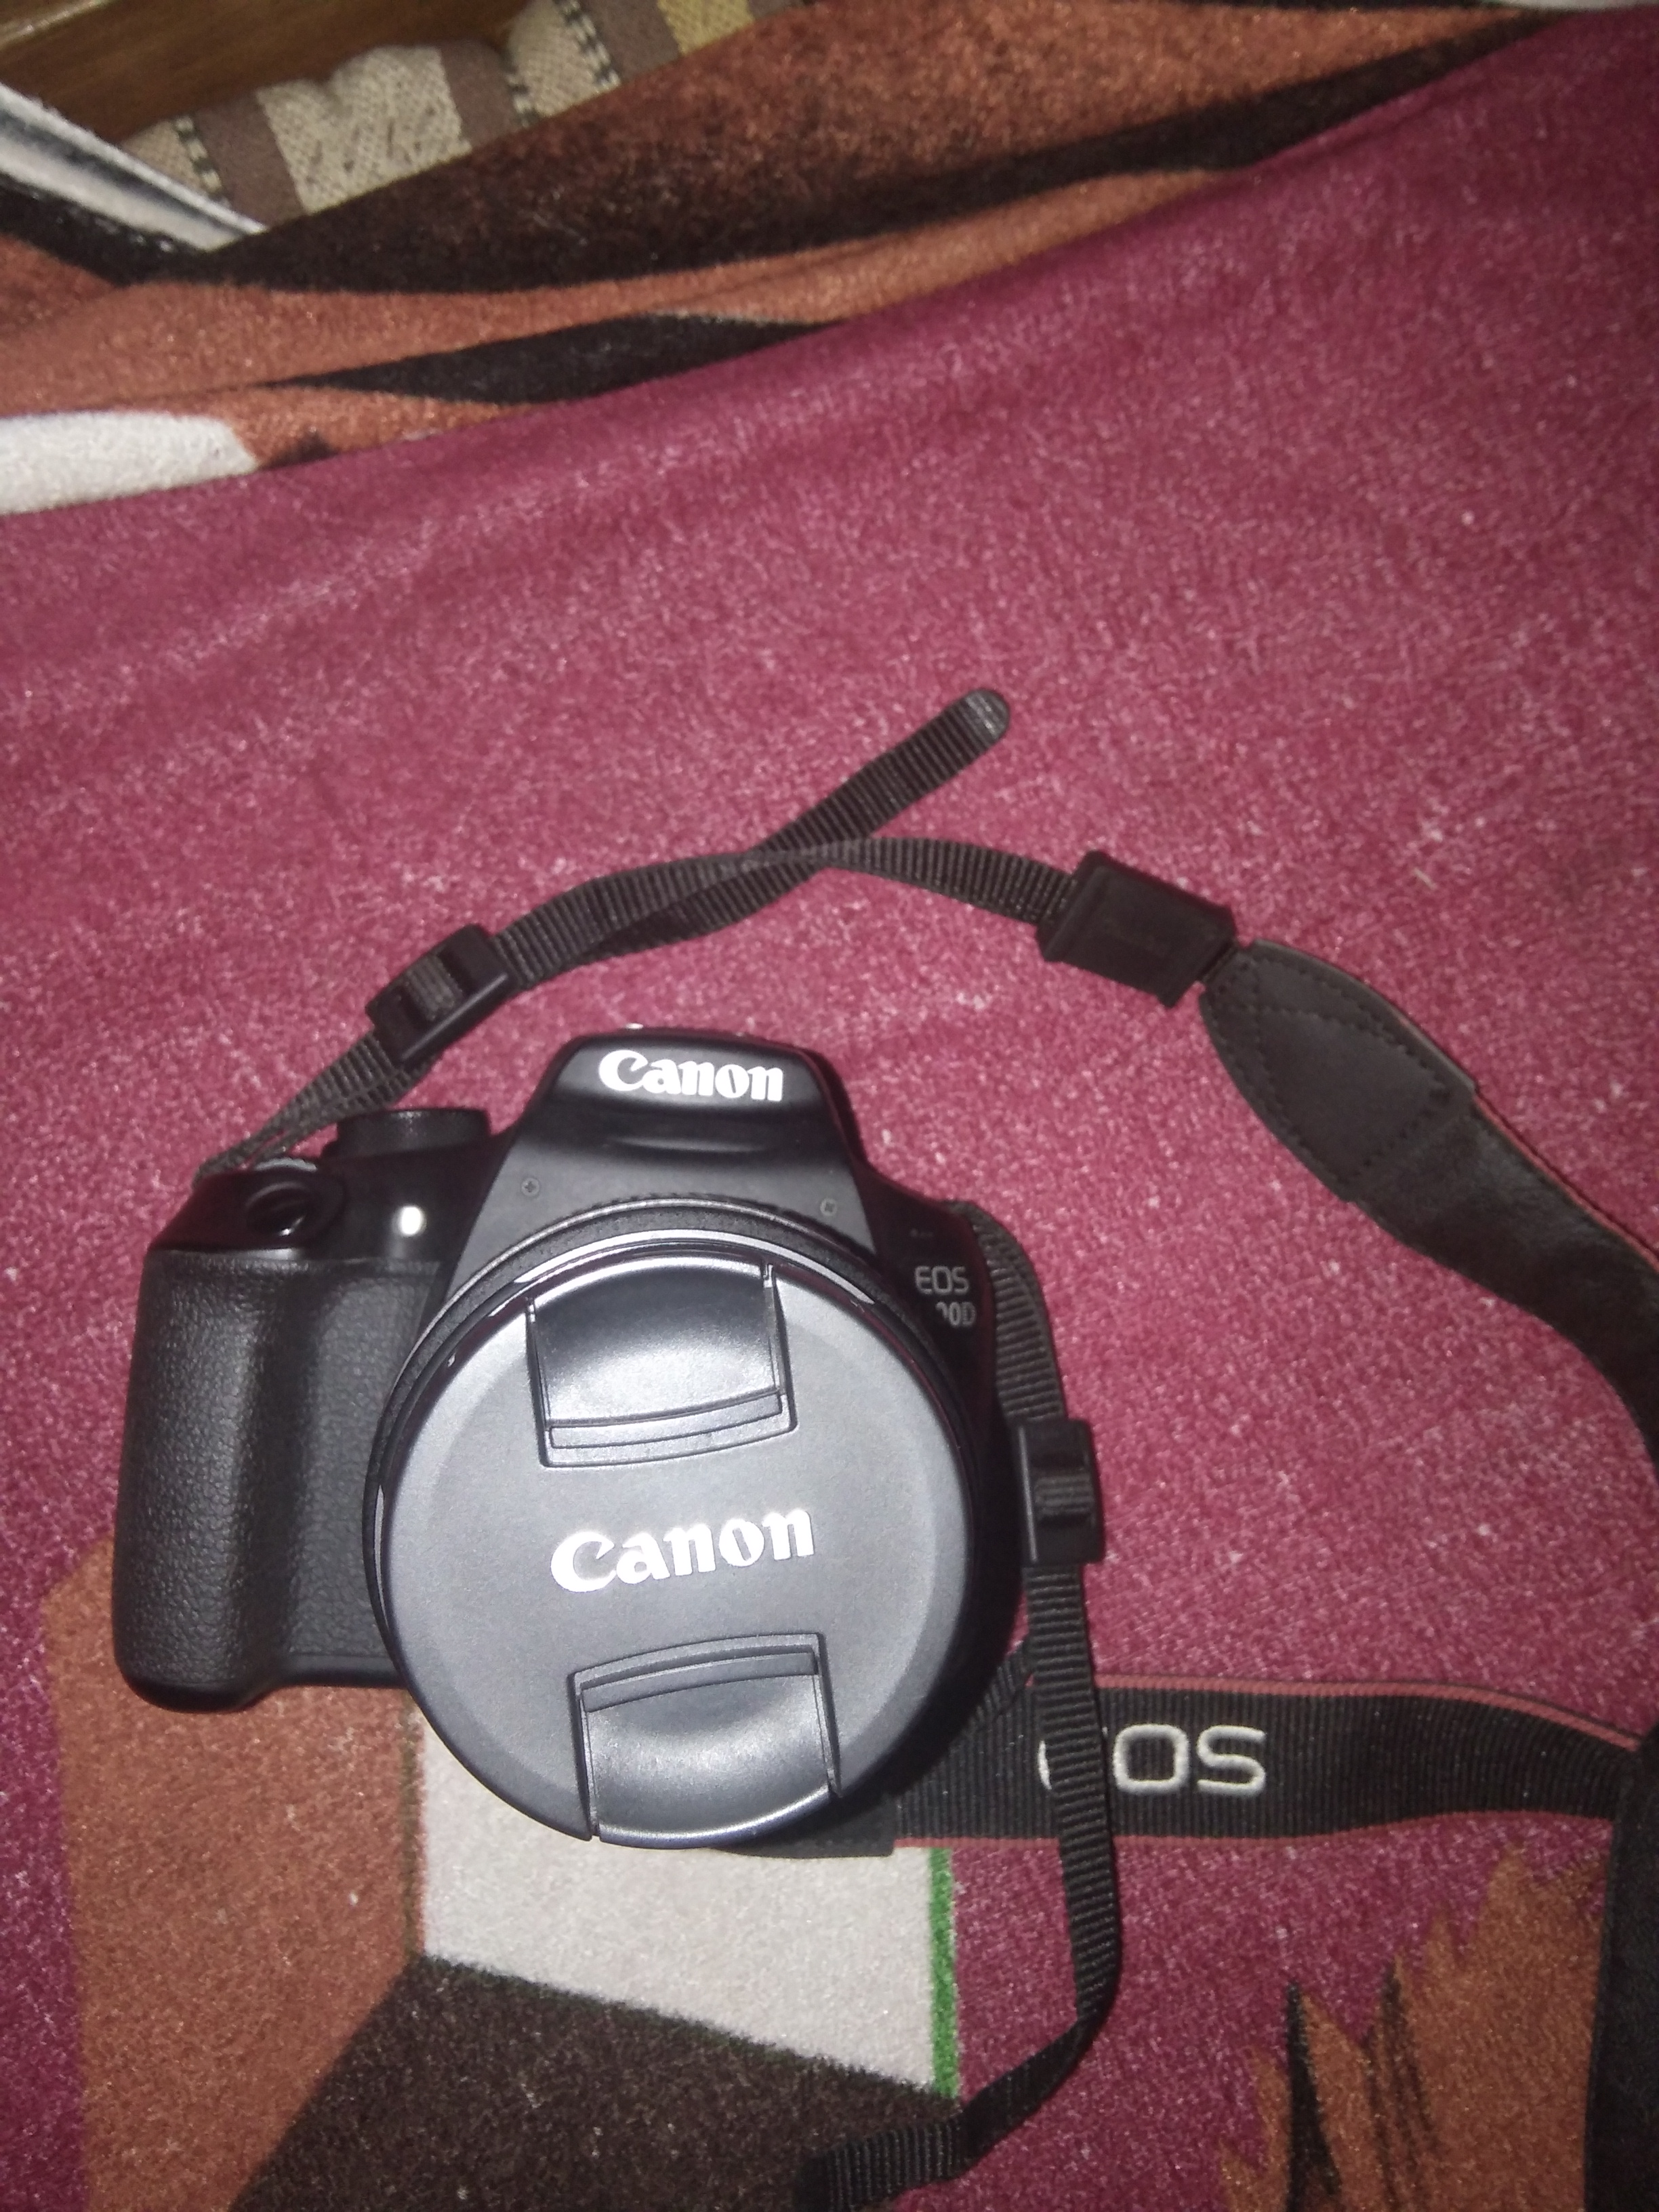 About Canon 1300 D Camera Eos 1300d Kit Ef S 18 55 Is Ii Digital With Lens 55mm Was Very Clear Abd So Much Blur And I Happy Better Useful Feature Than Nikon The Price Not Bad Good